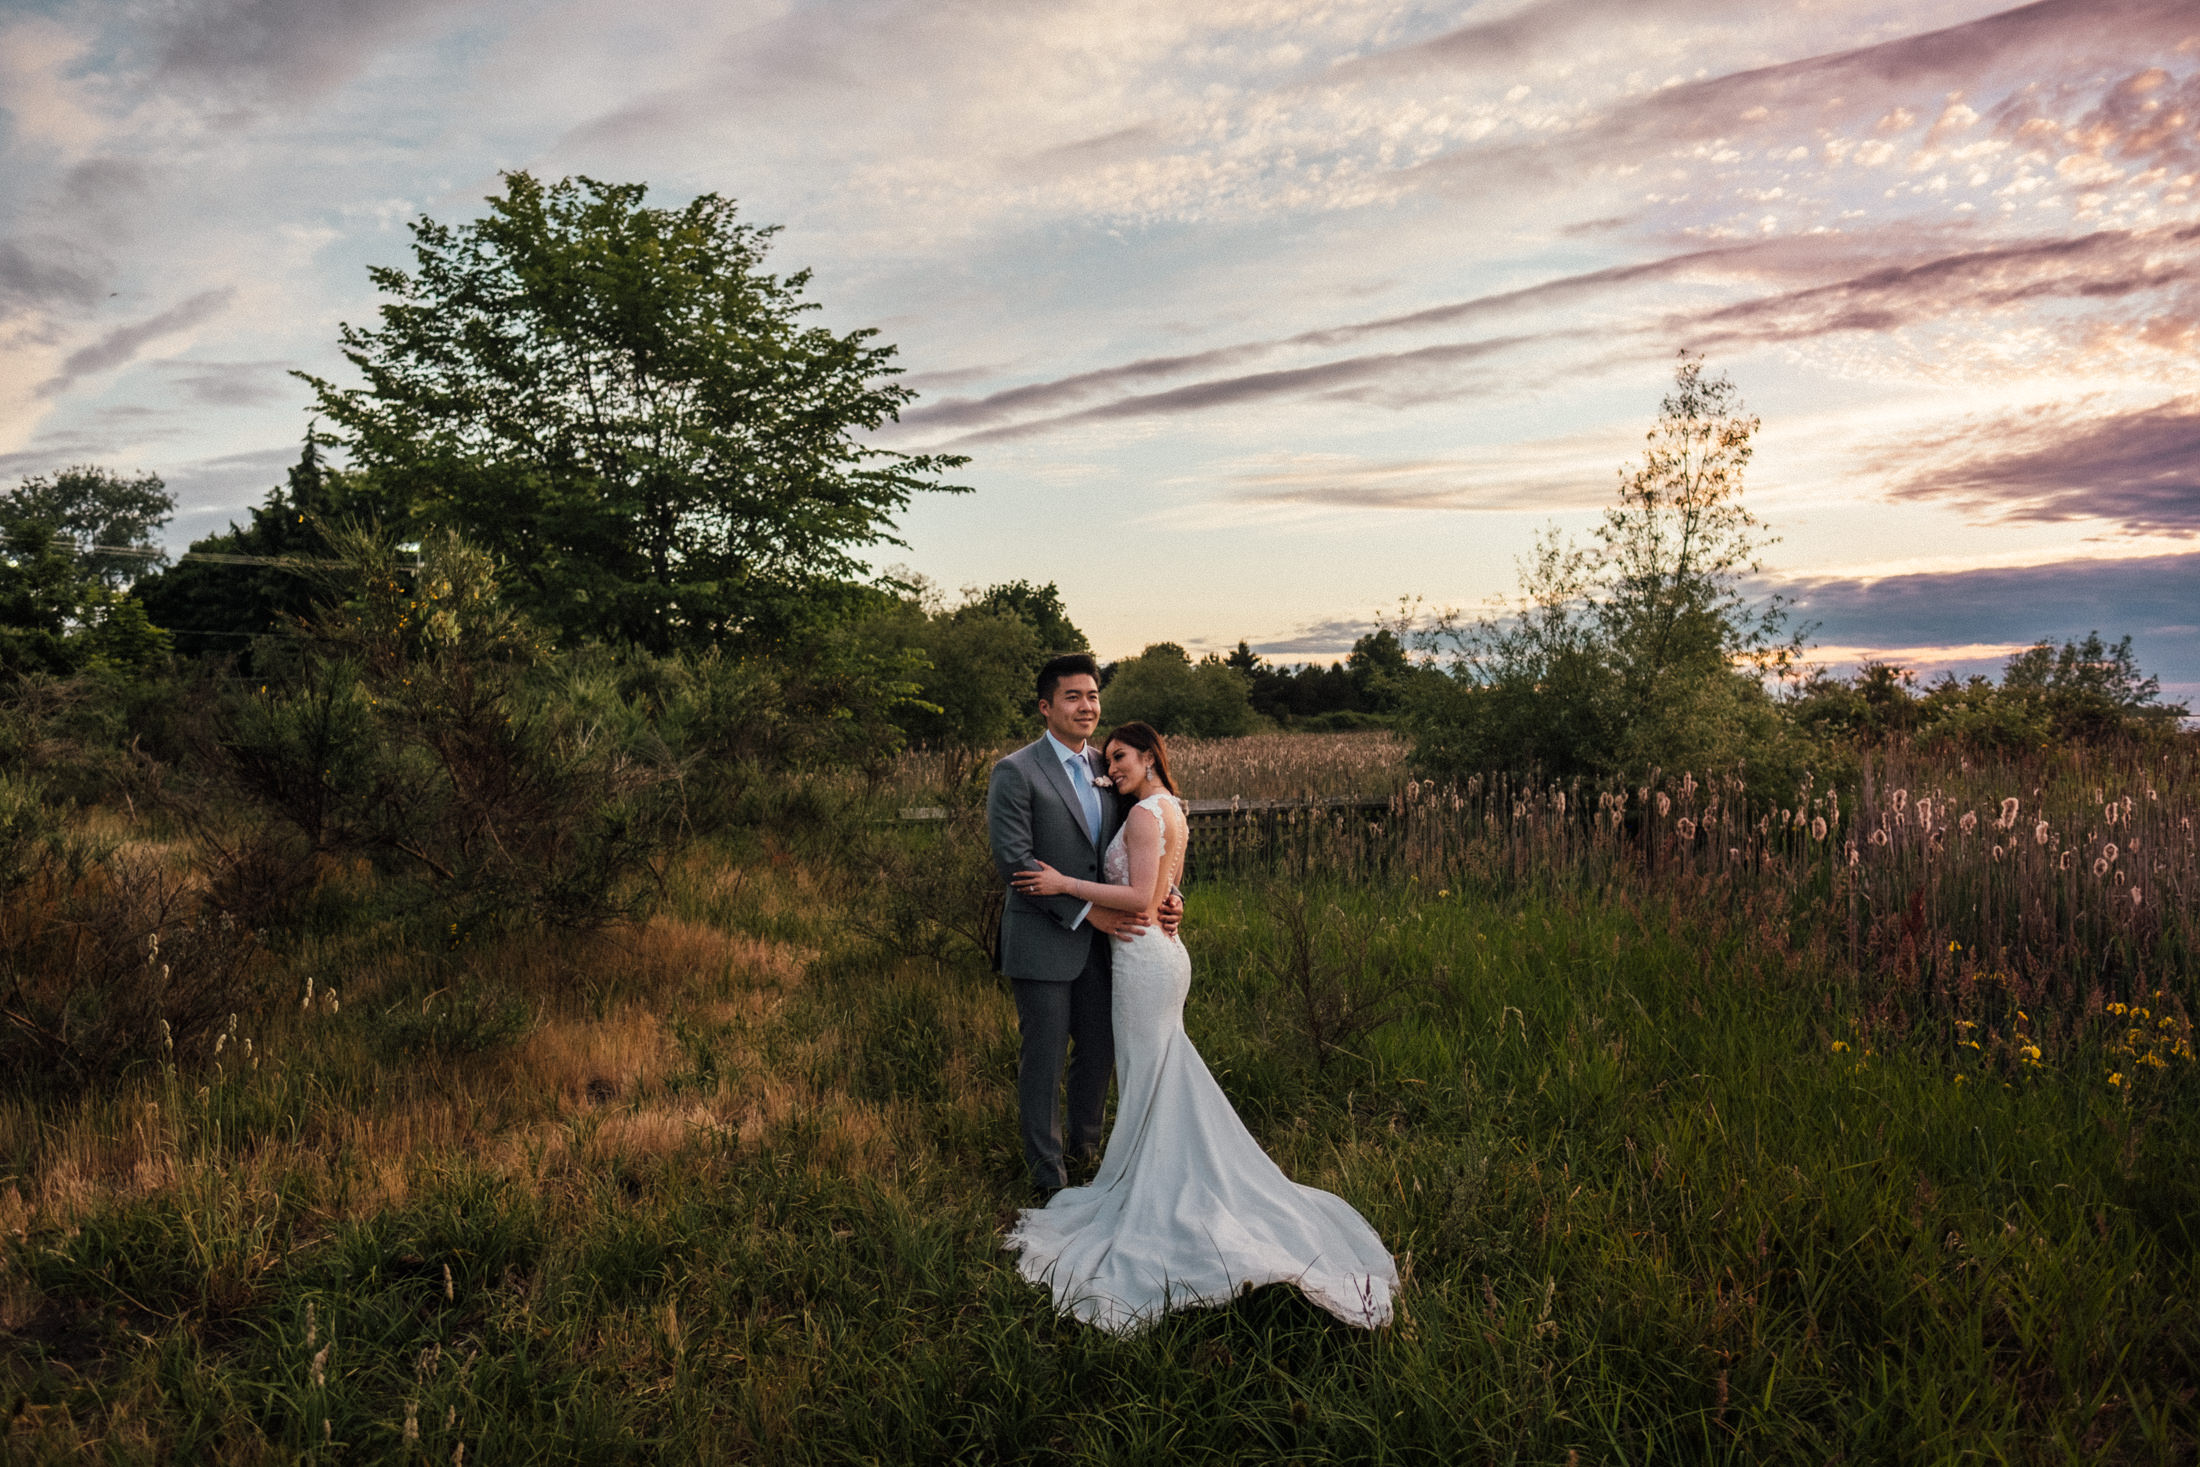 Customizeyour package. - Looking to add an extra hour or two, or need a photographer for more than one day? These items can be added on to enhance your wedding day.